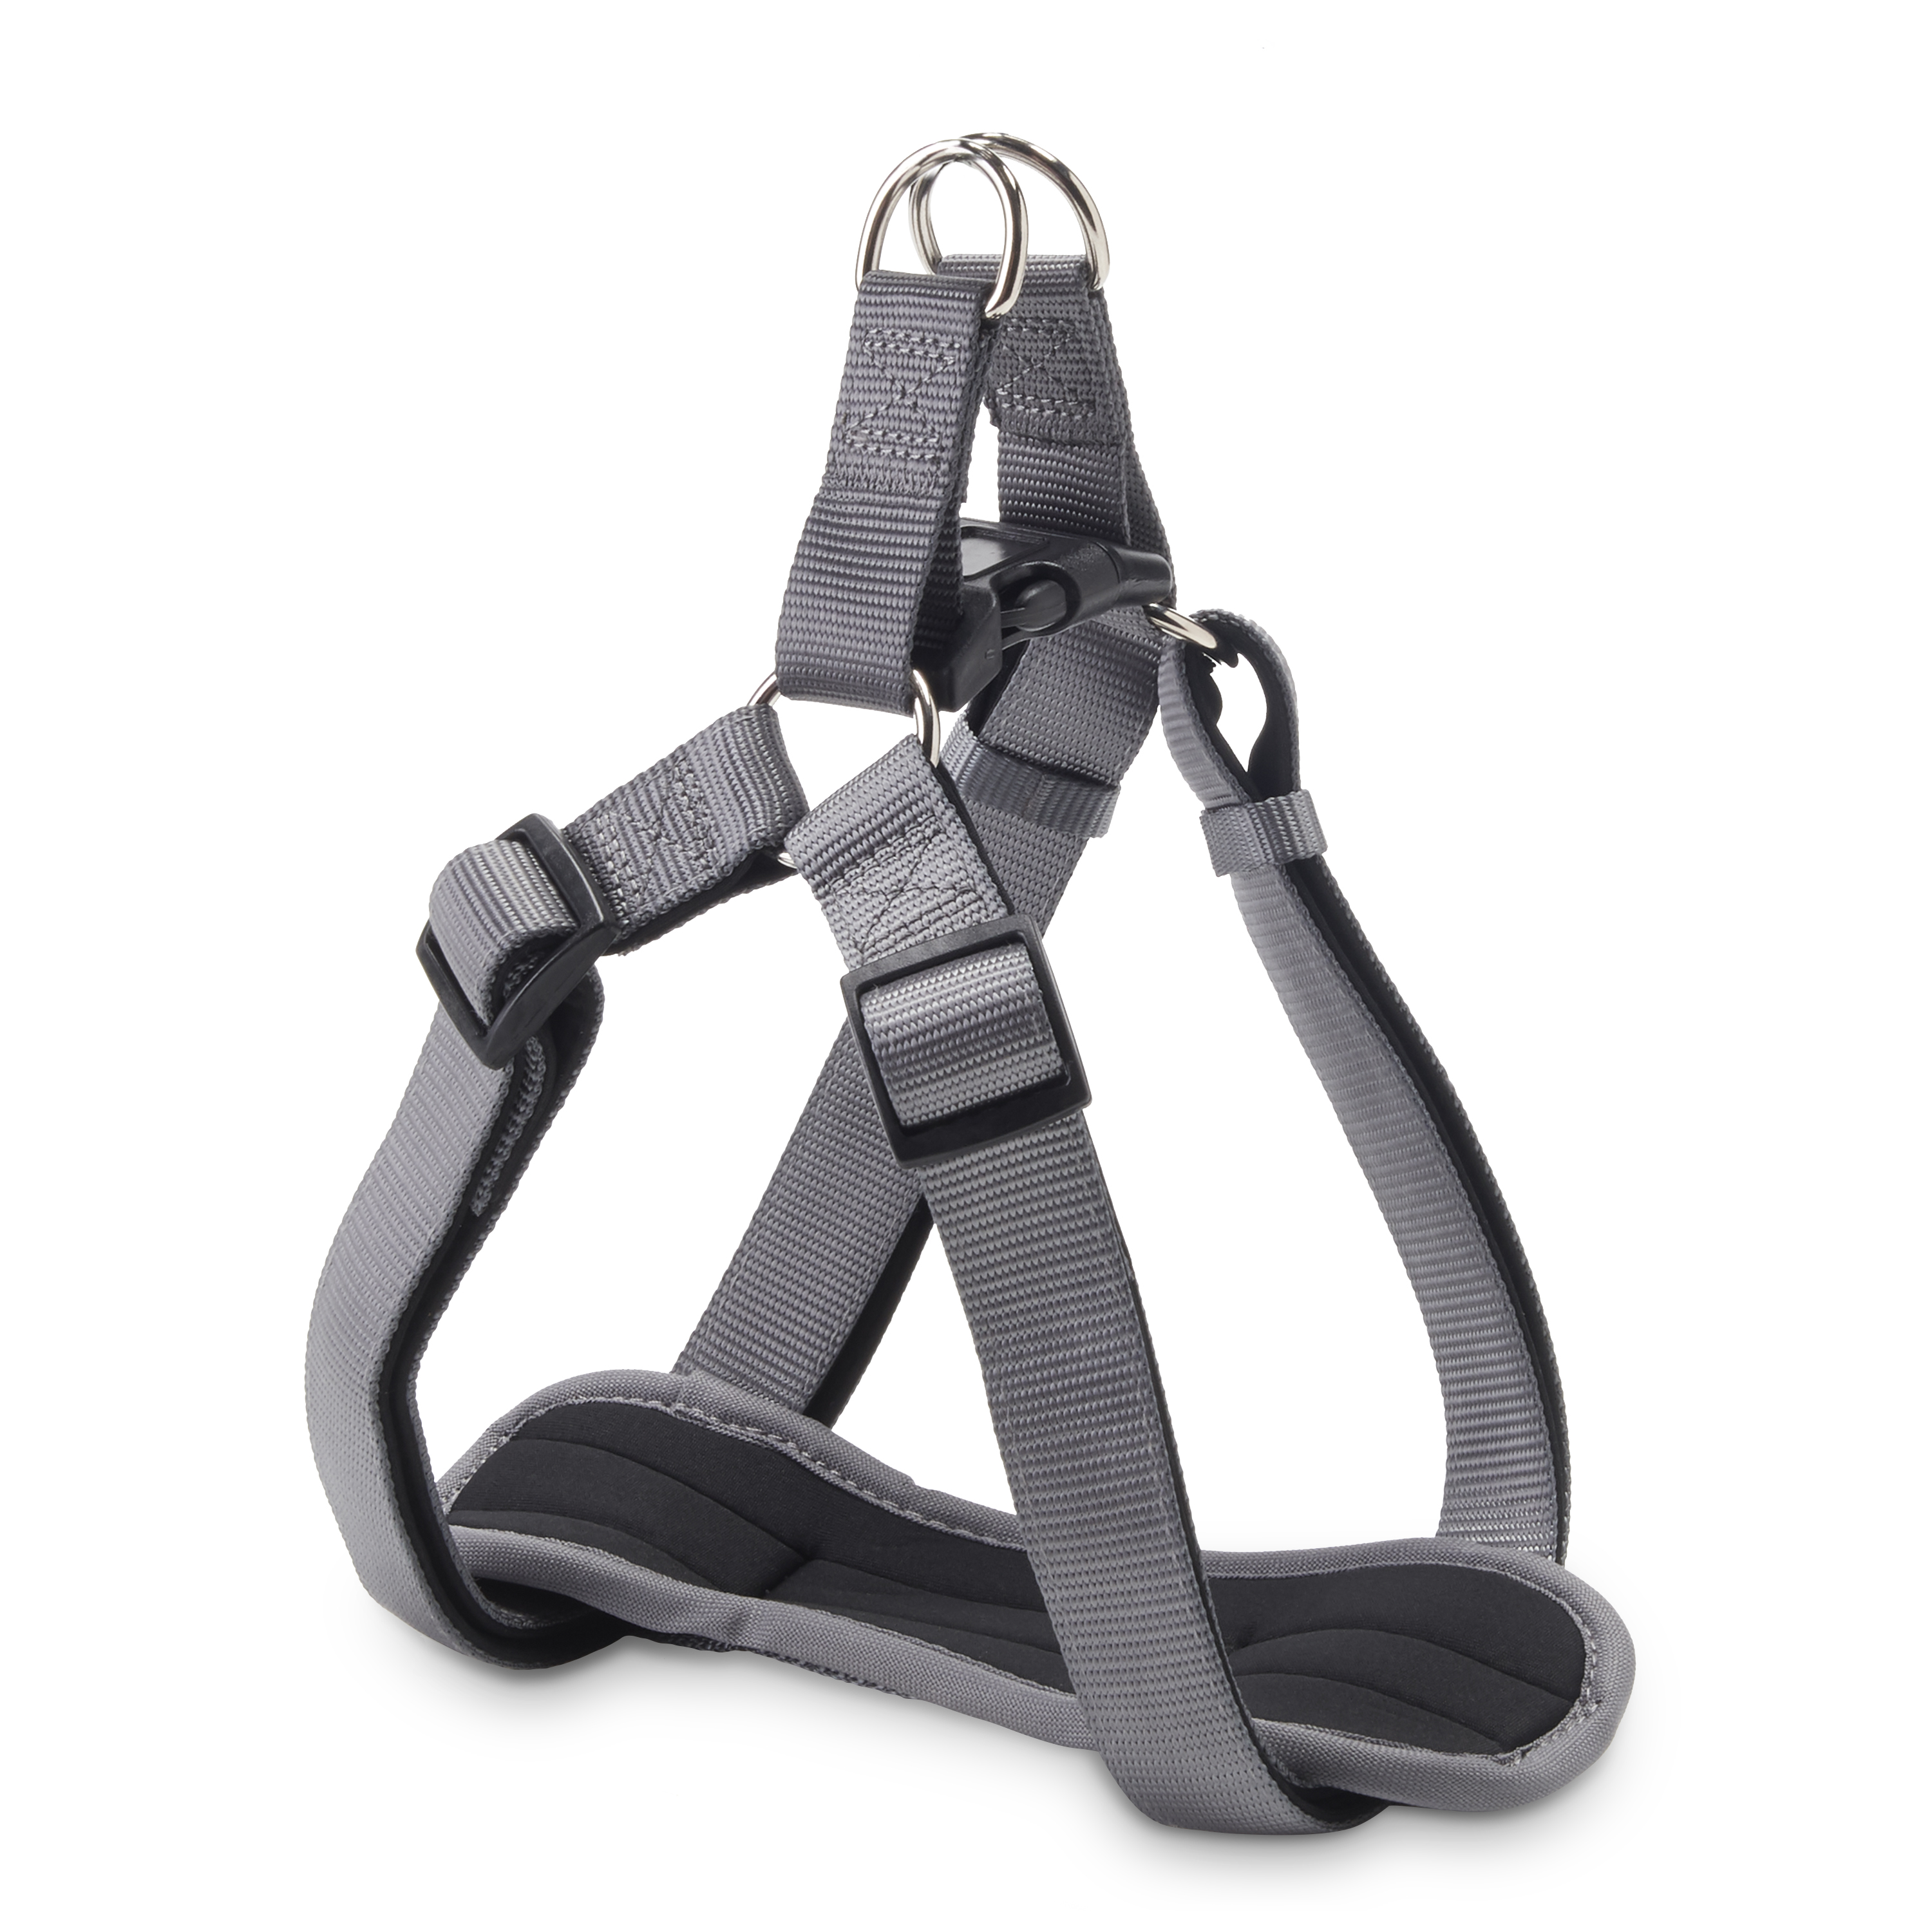 Vibrant Life Comfort Gray Padded Dog Harness, Large, 22-36""